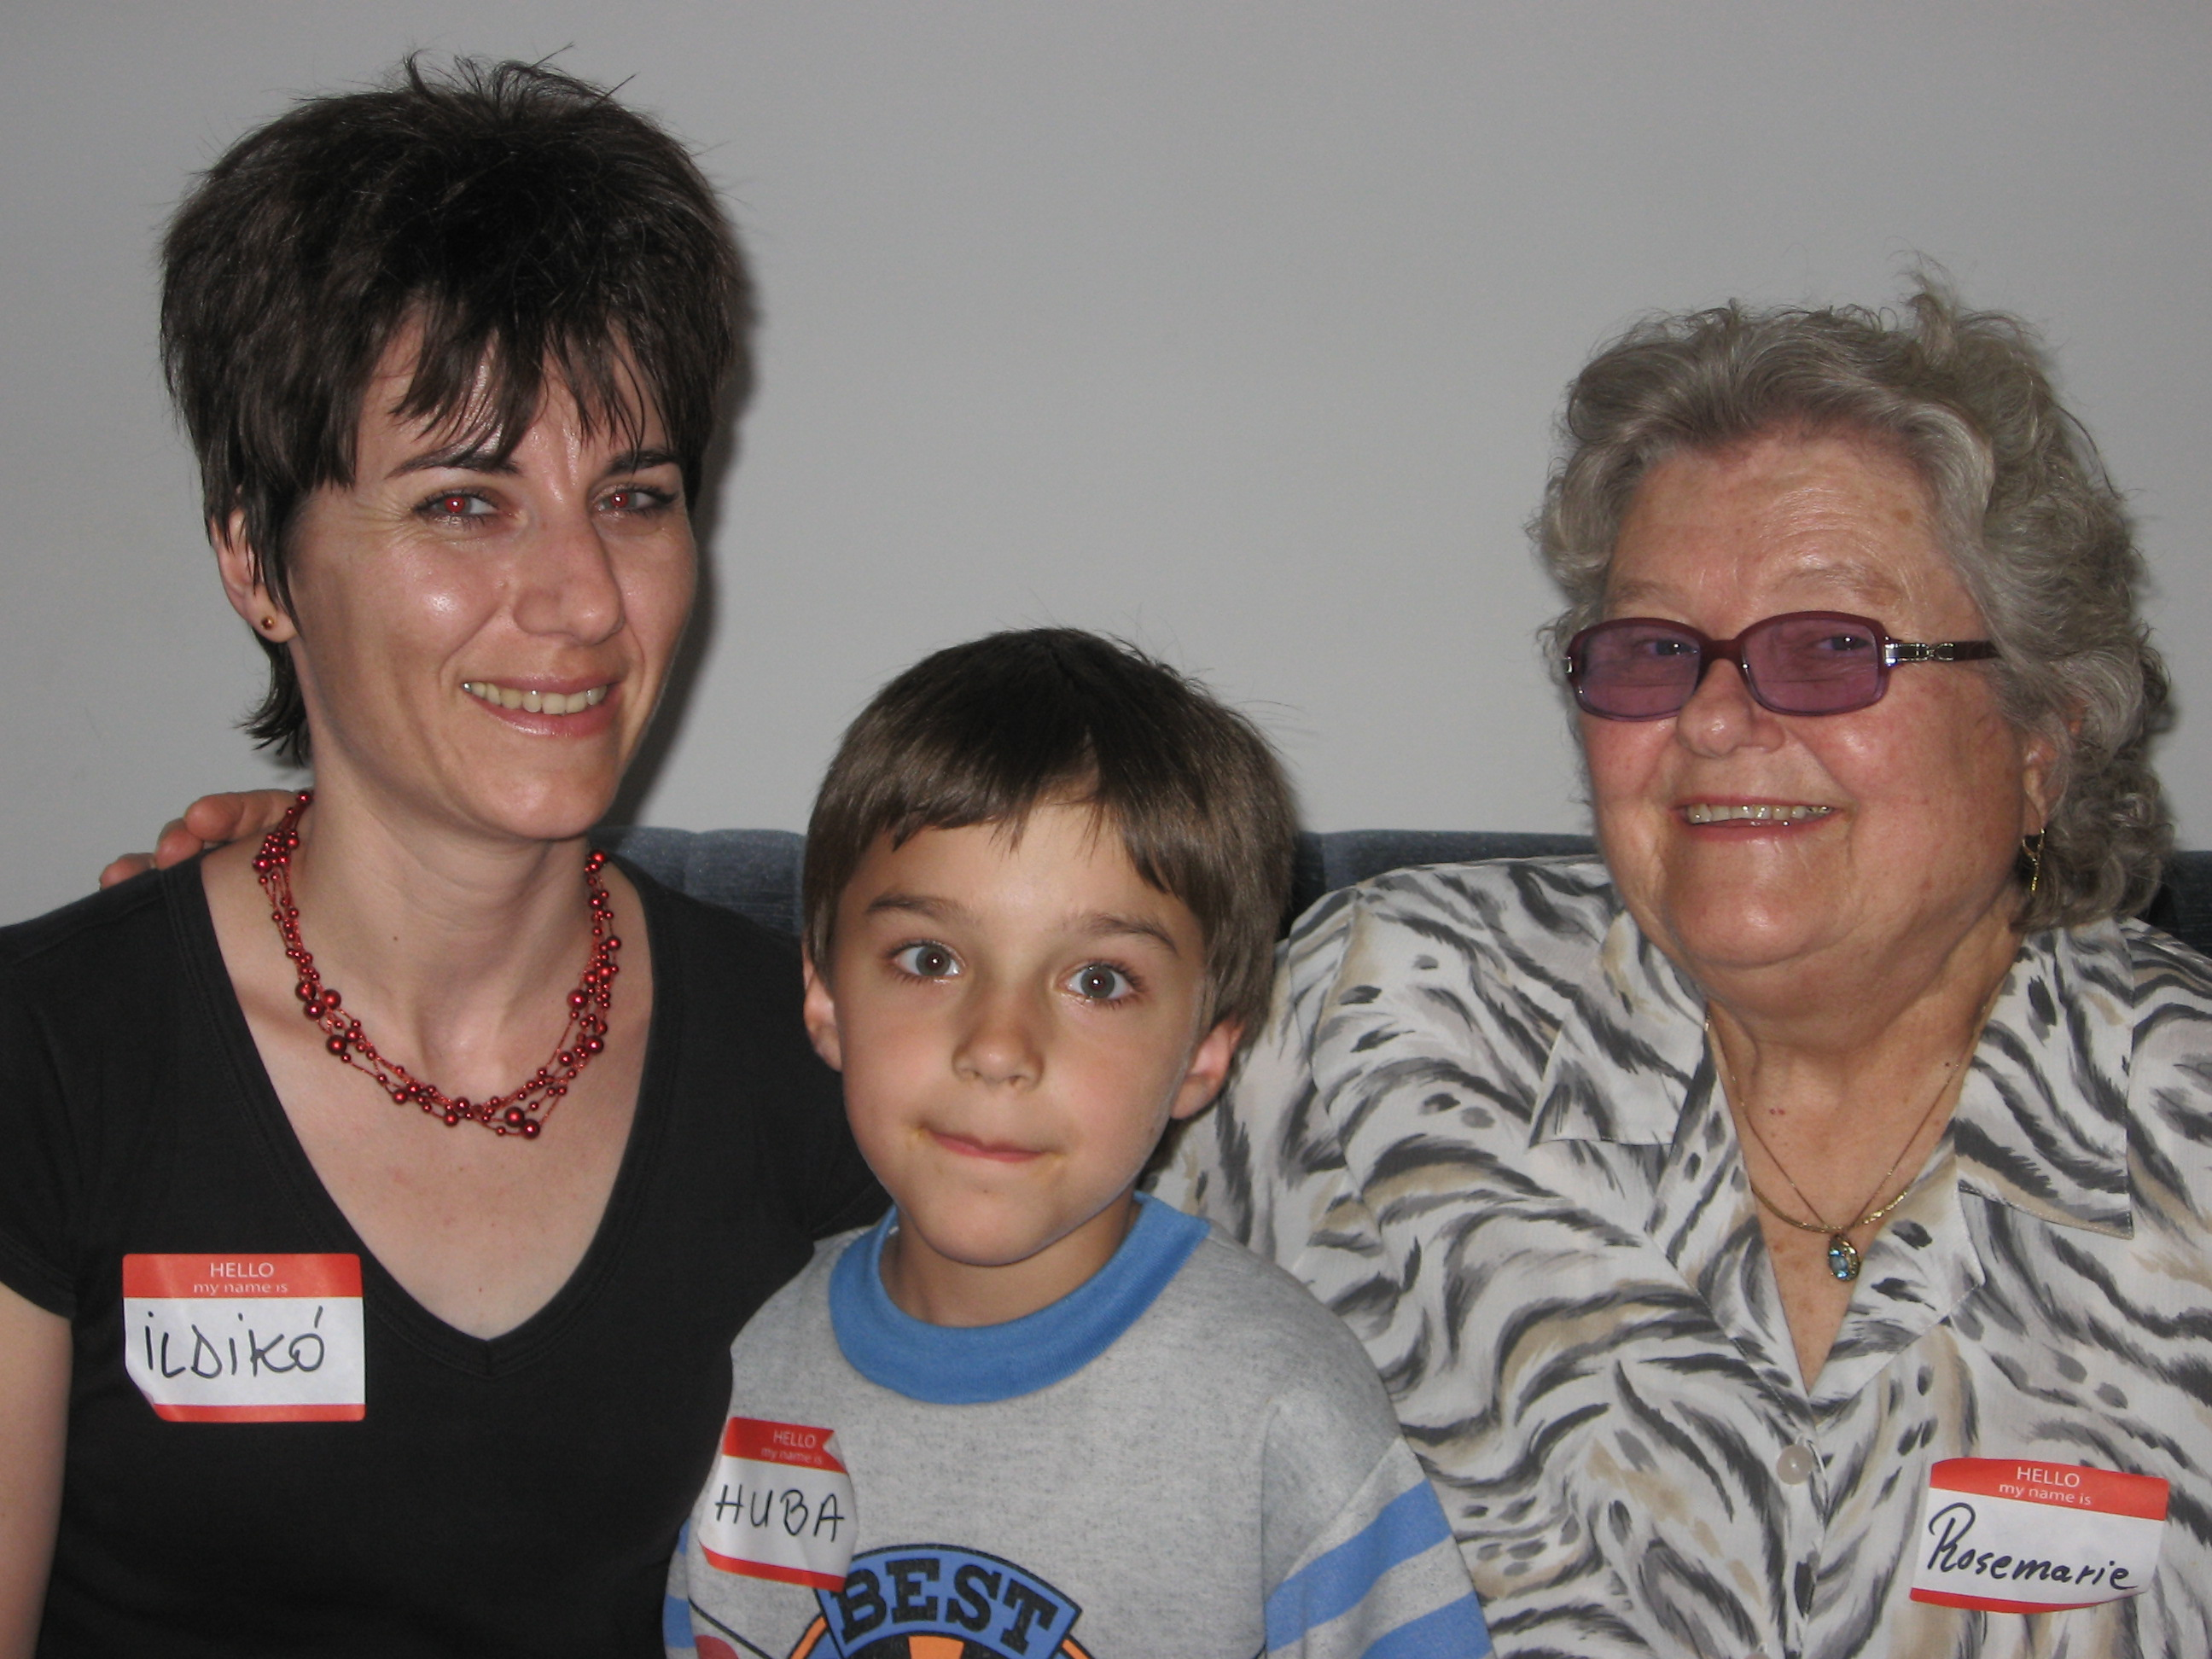 Ildeko, her son, Huba, and Rosemarie at LST Party